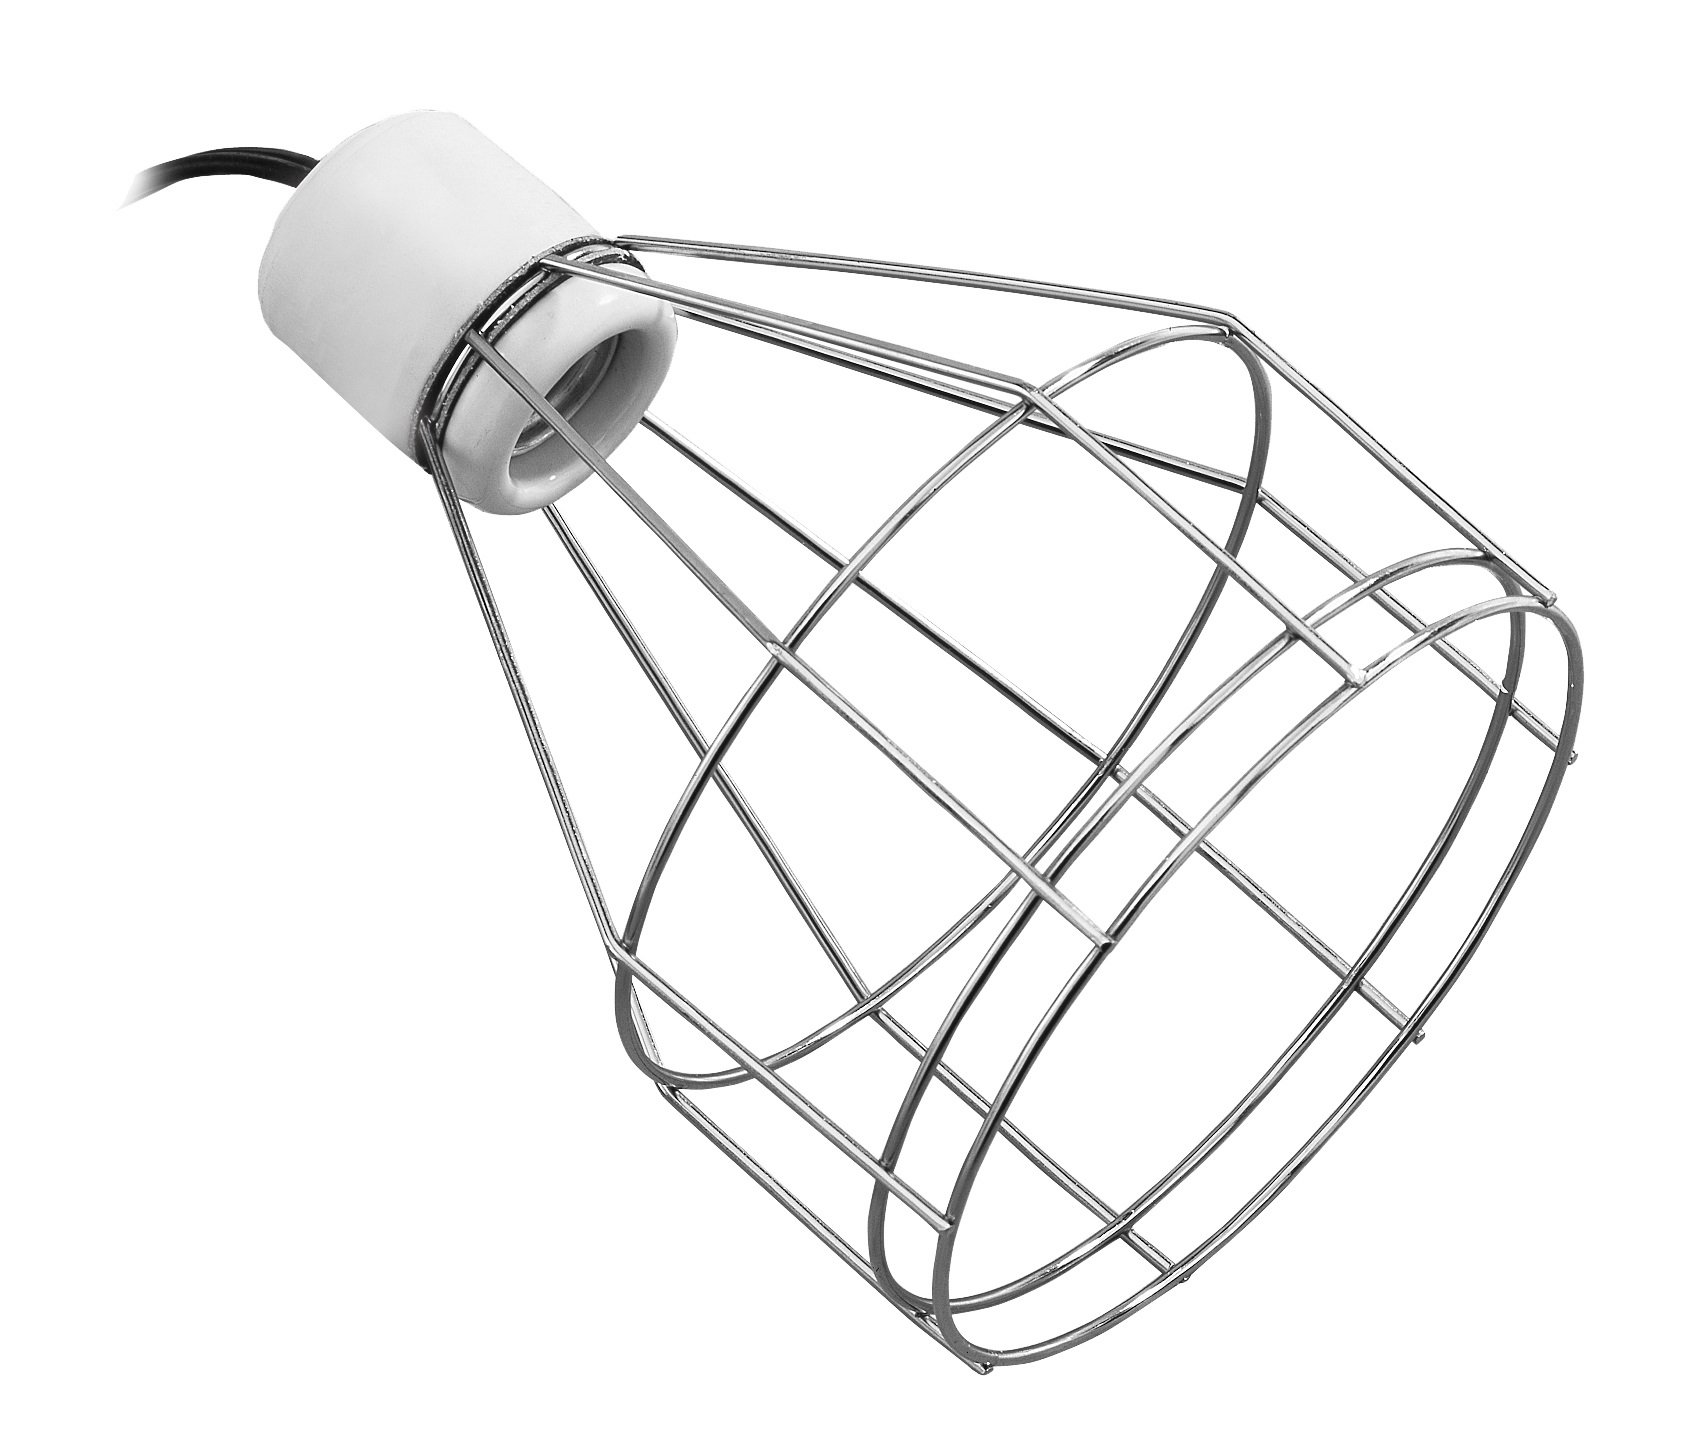 Exo Terra Porcelain Clamp Lamp, Small